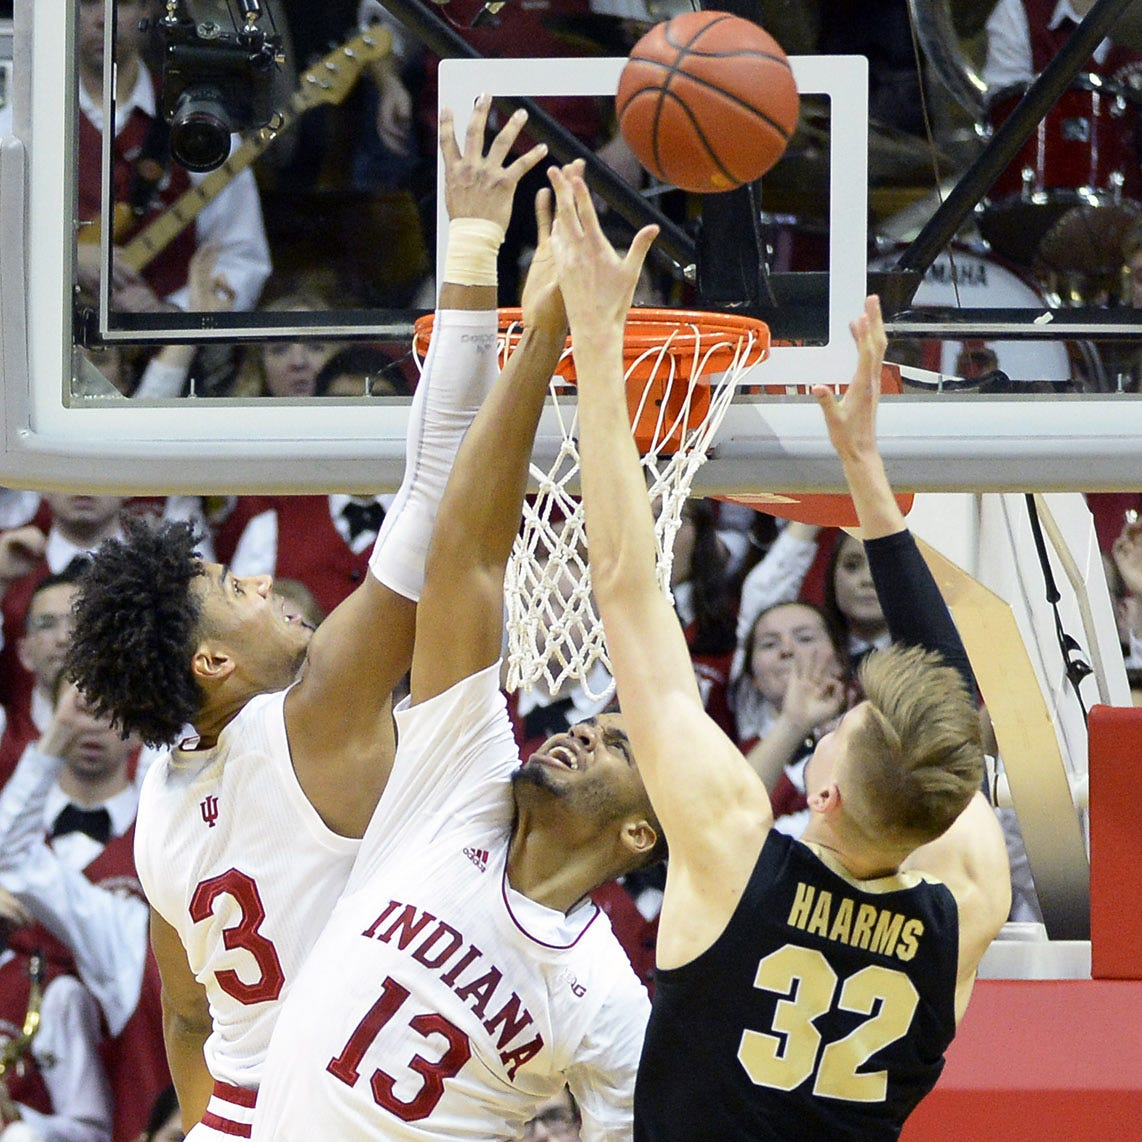 Buzzer breakdown: IU shows fight, falls short in upset bid over No. 15 Purdue